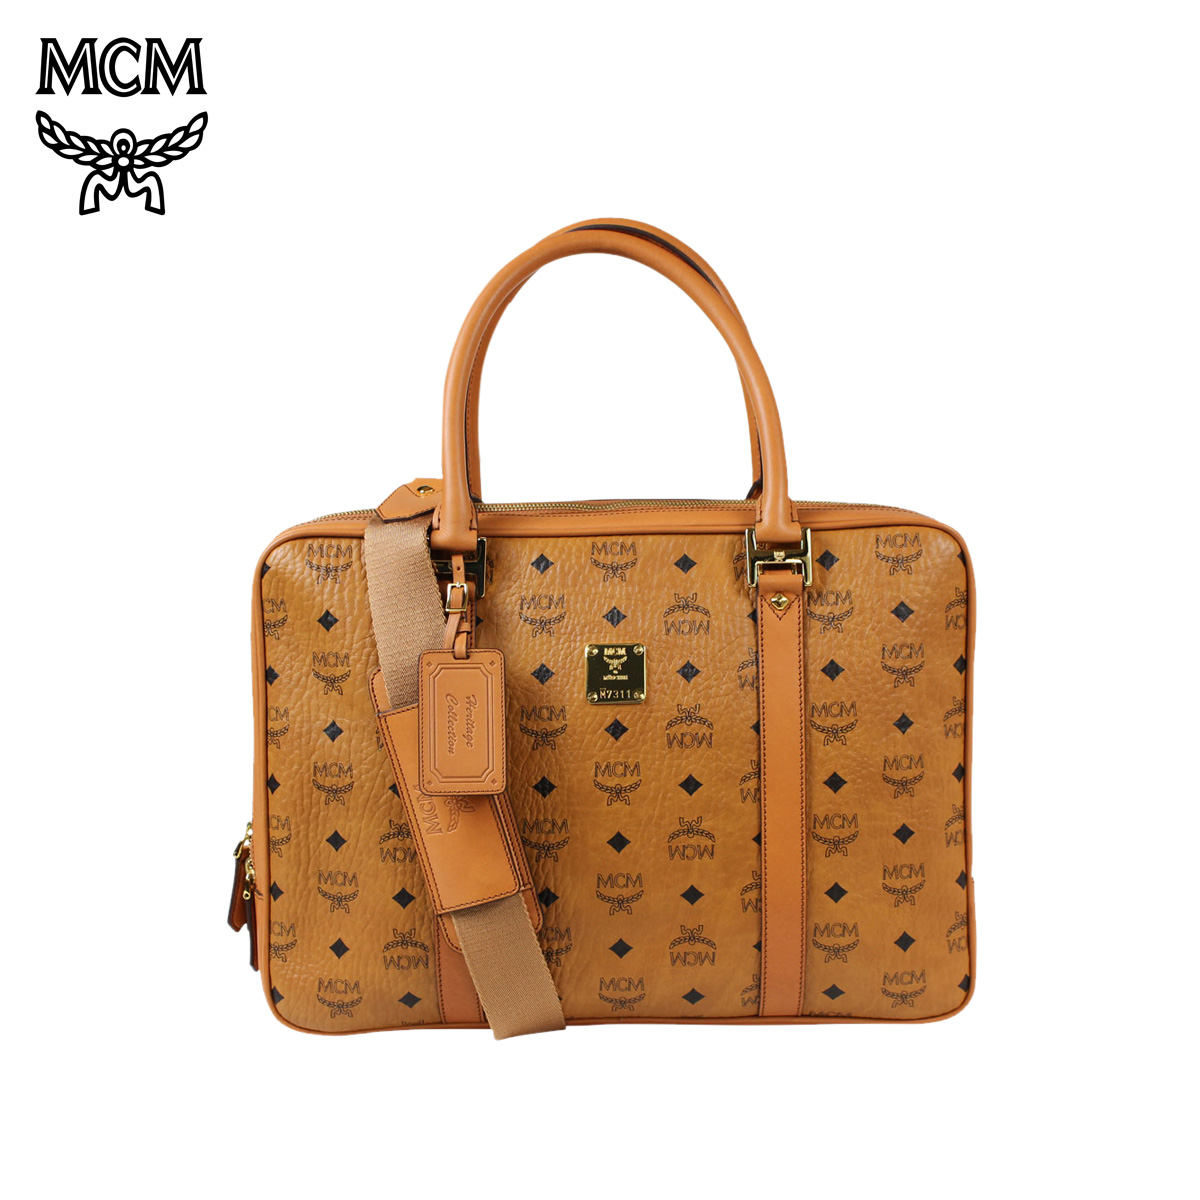 What Does Mcm Handbags Stand For Handbags 2019